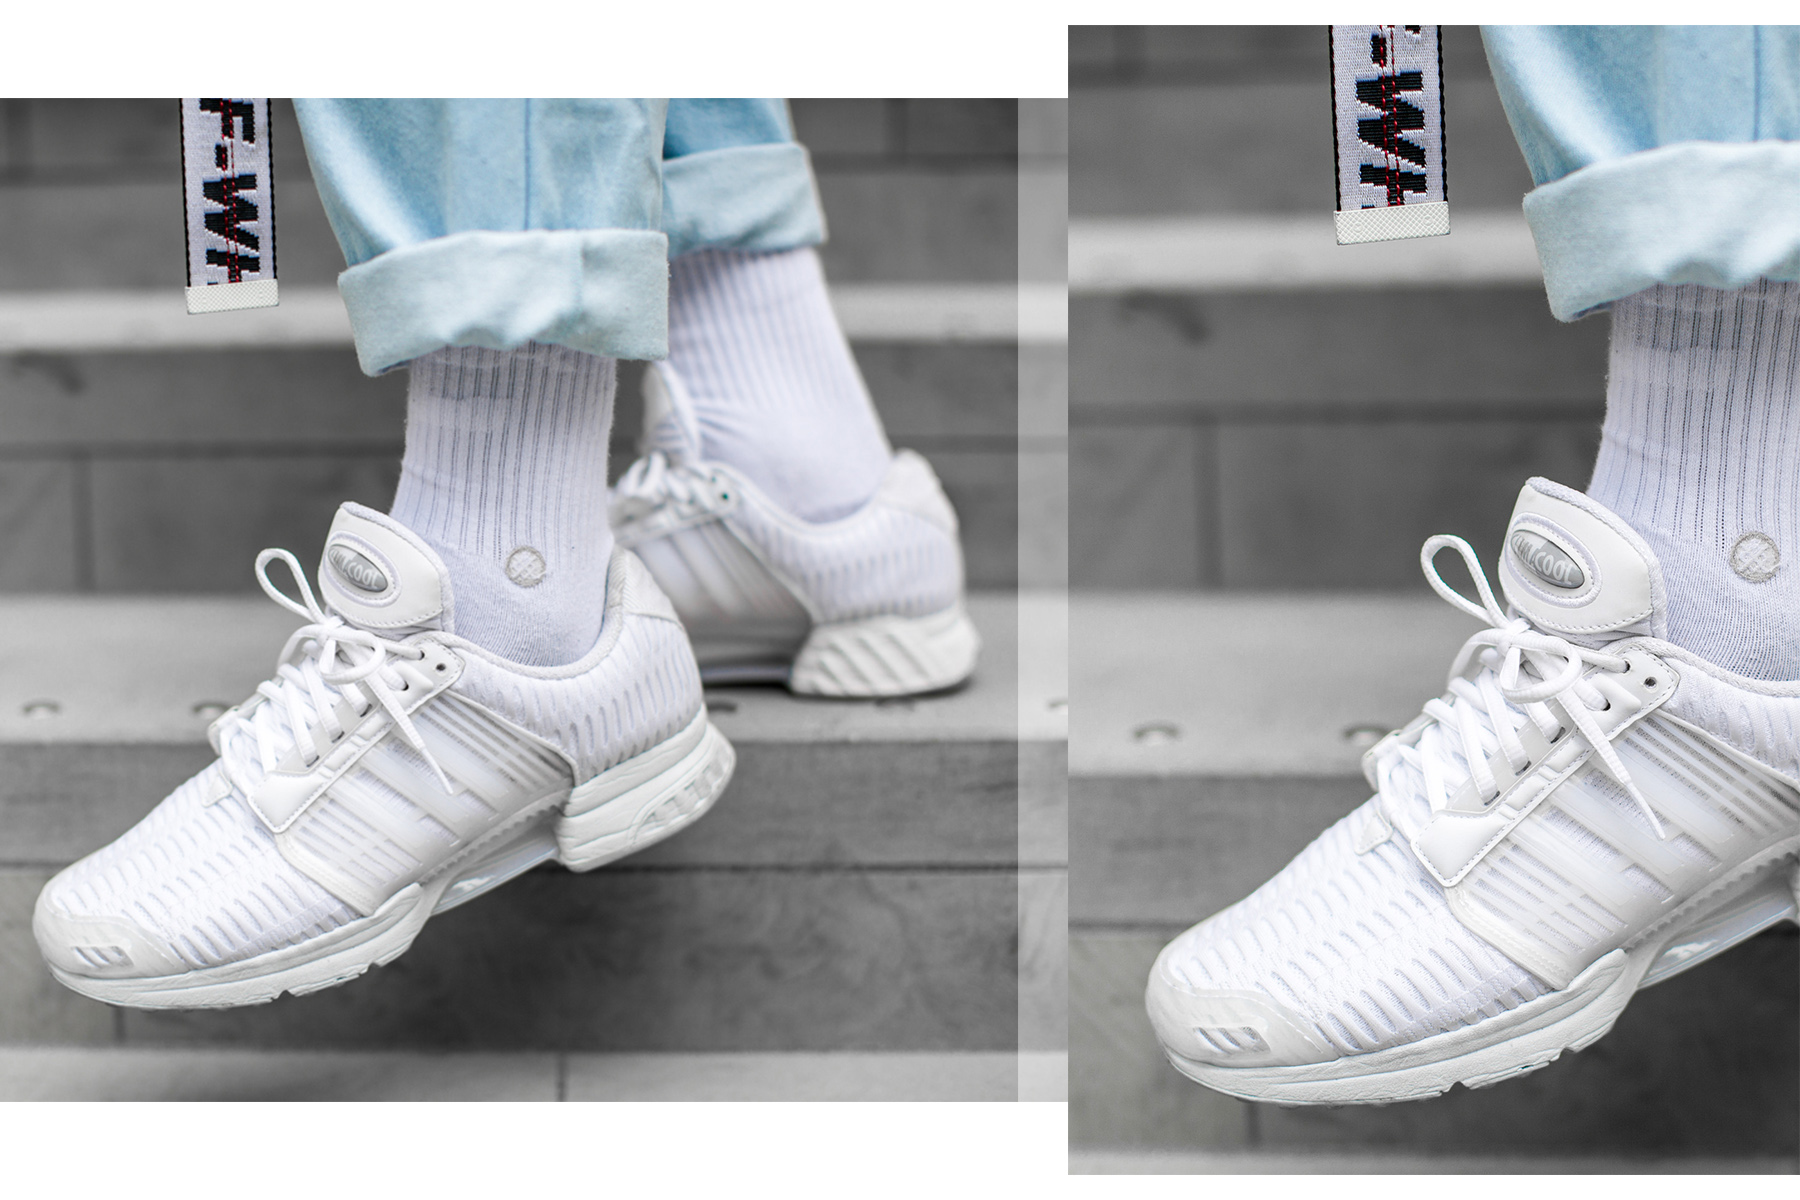 All-white Adidas Clima Cool Sneakers worn by Jean-Claude Mpassy during London Fashion Week Men's